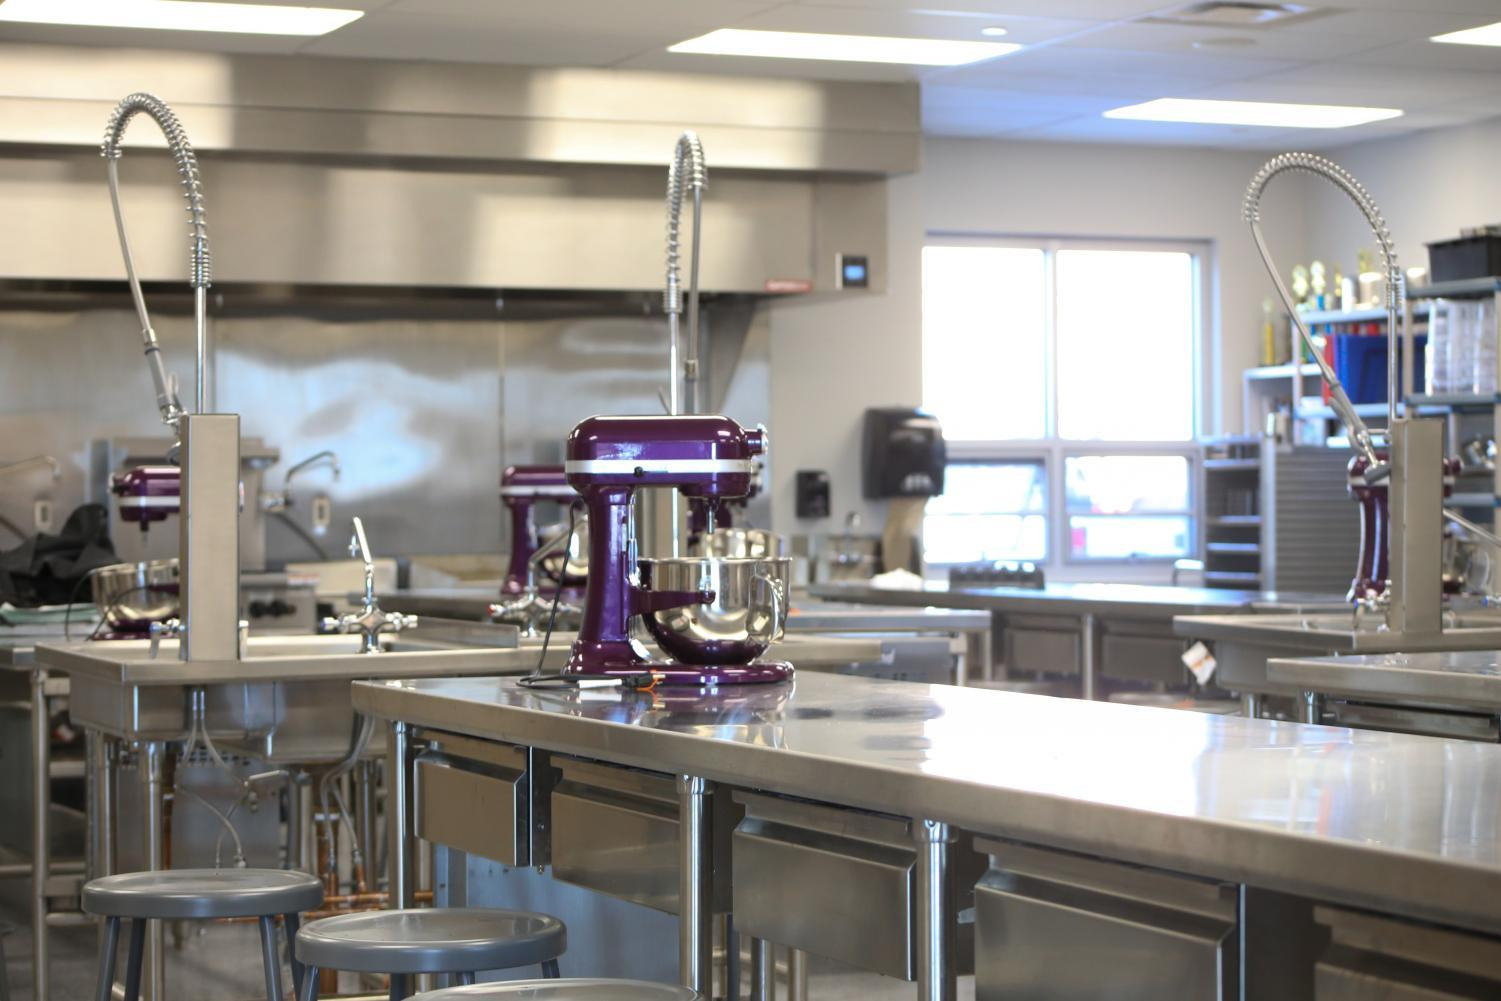 The+new+culinary+classes+have+upgrades+from+the+current+culinary+rooms.+With+almost+all+new+tools+and+supplies%2C+this+room+is+an+upgrade+for+culinary+students.